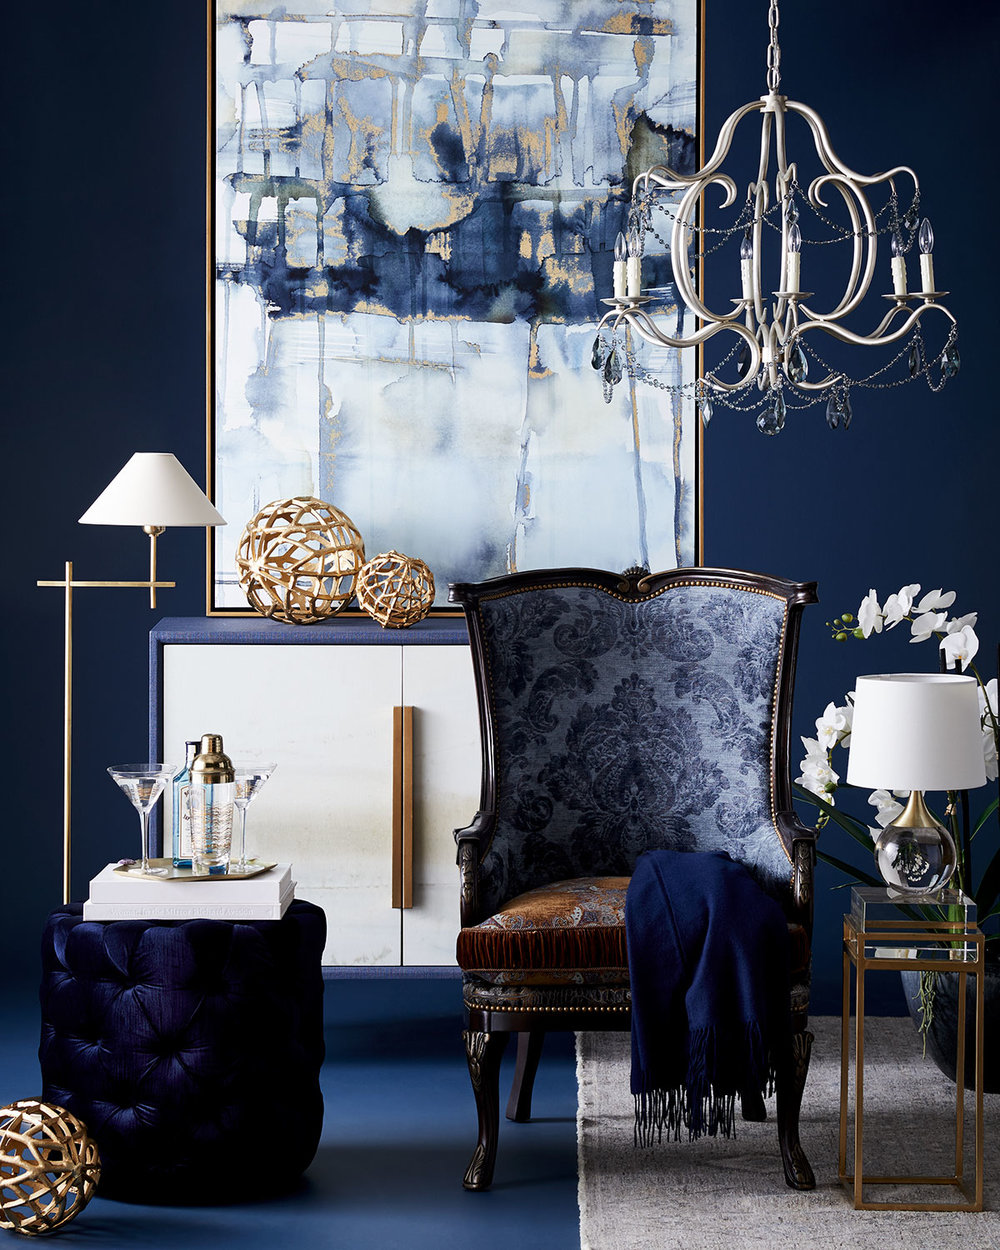 High contrast, navy and white with brass accents for dining room inspiration